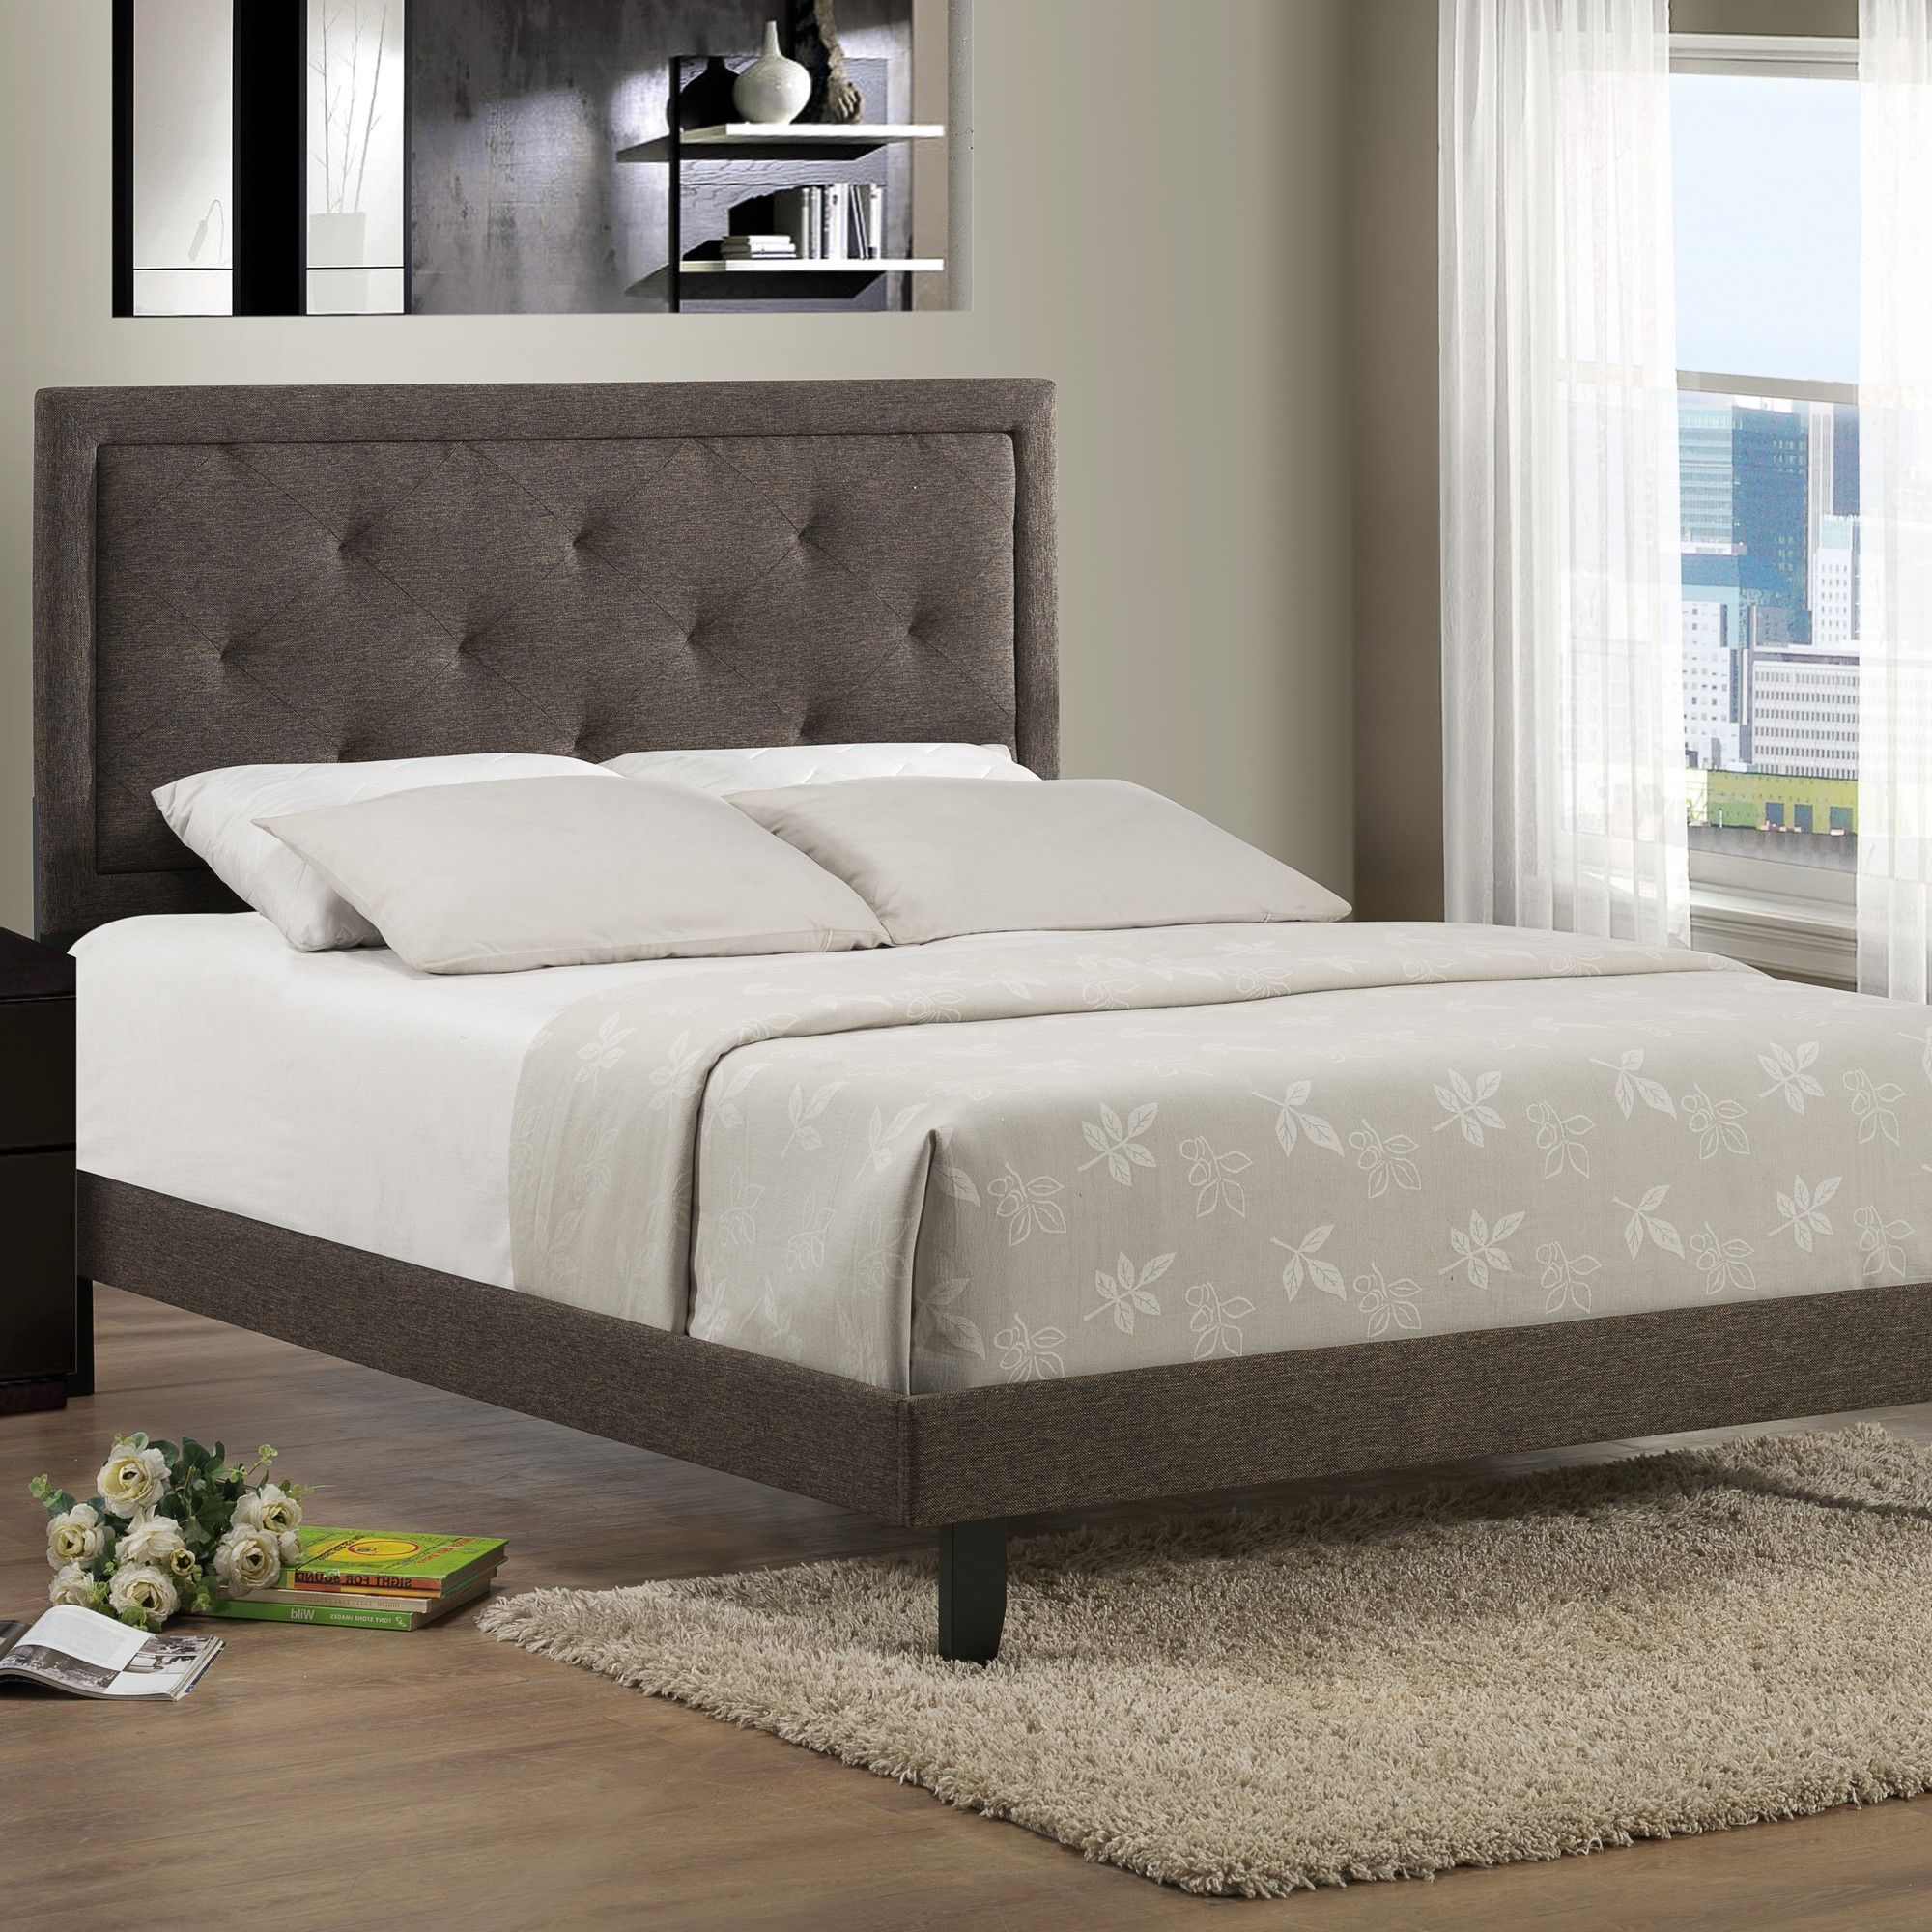 hillsdale becker panel bed reviews wayfair 399 99 the home of